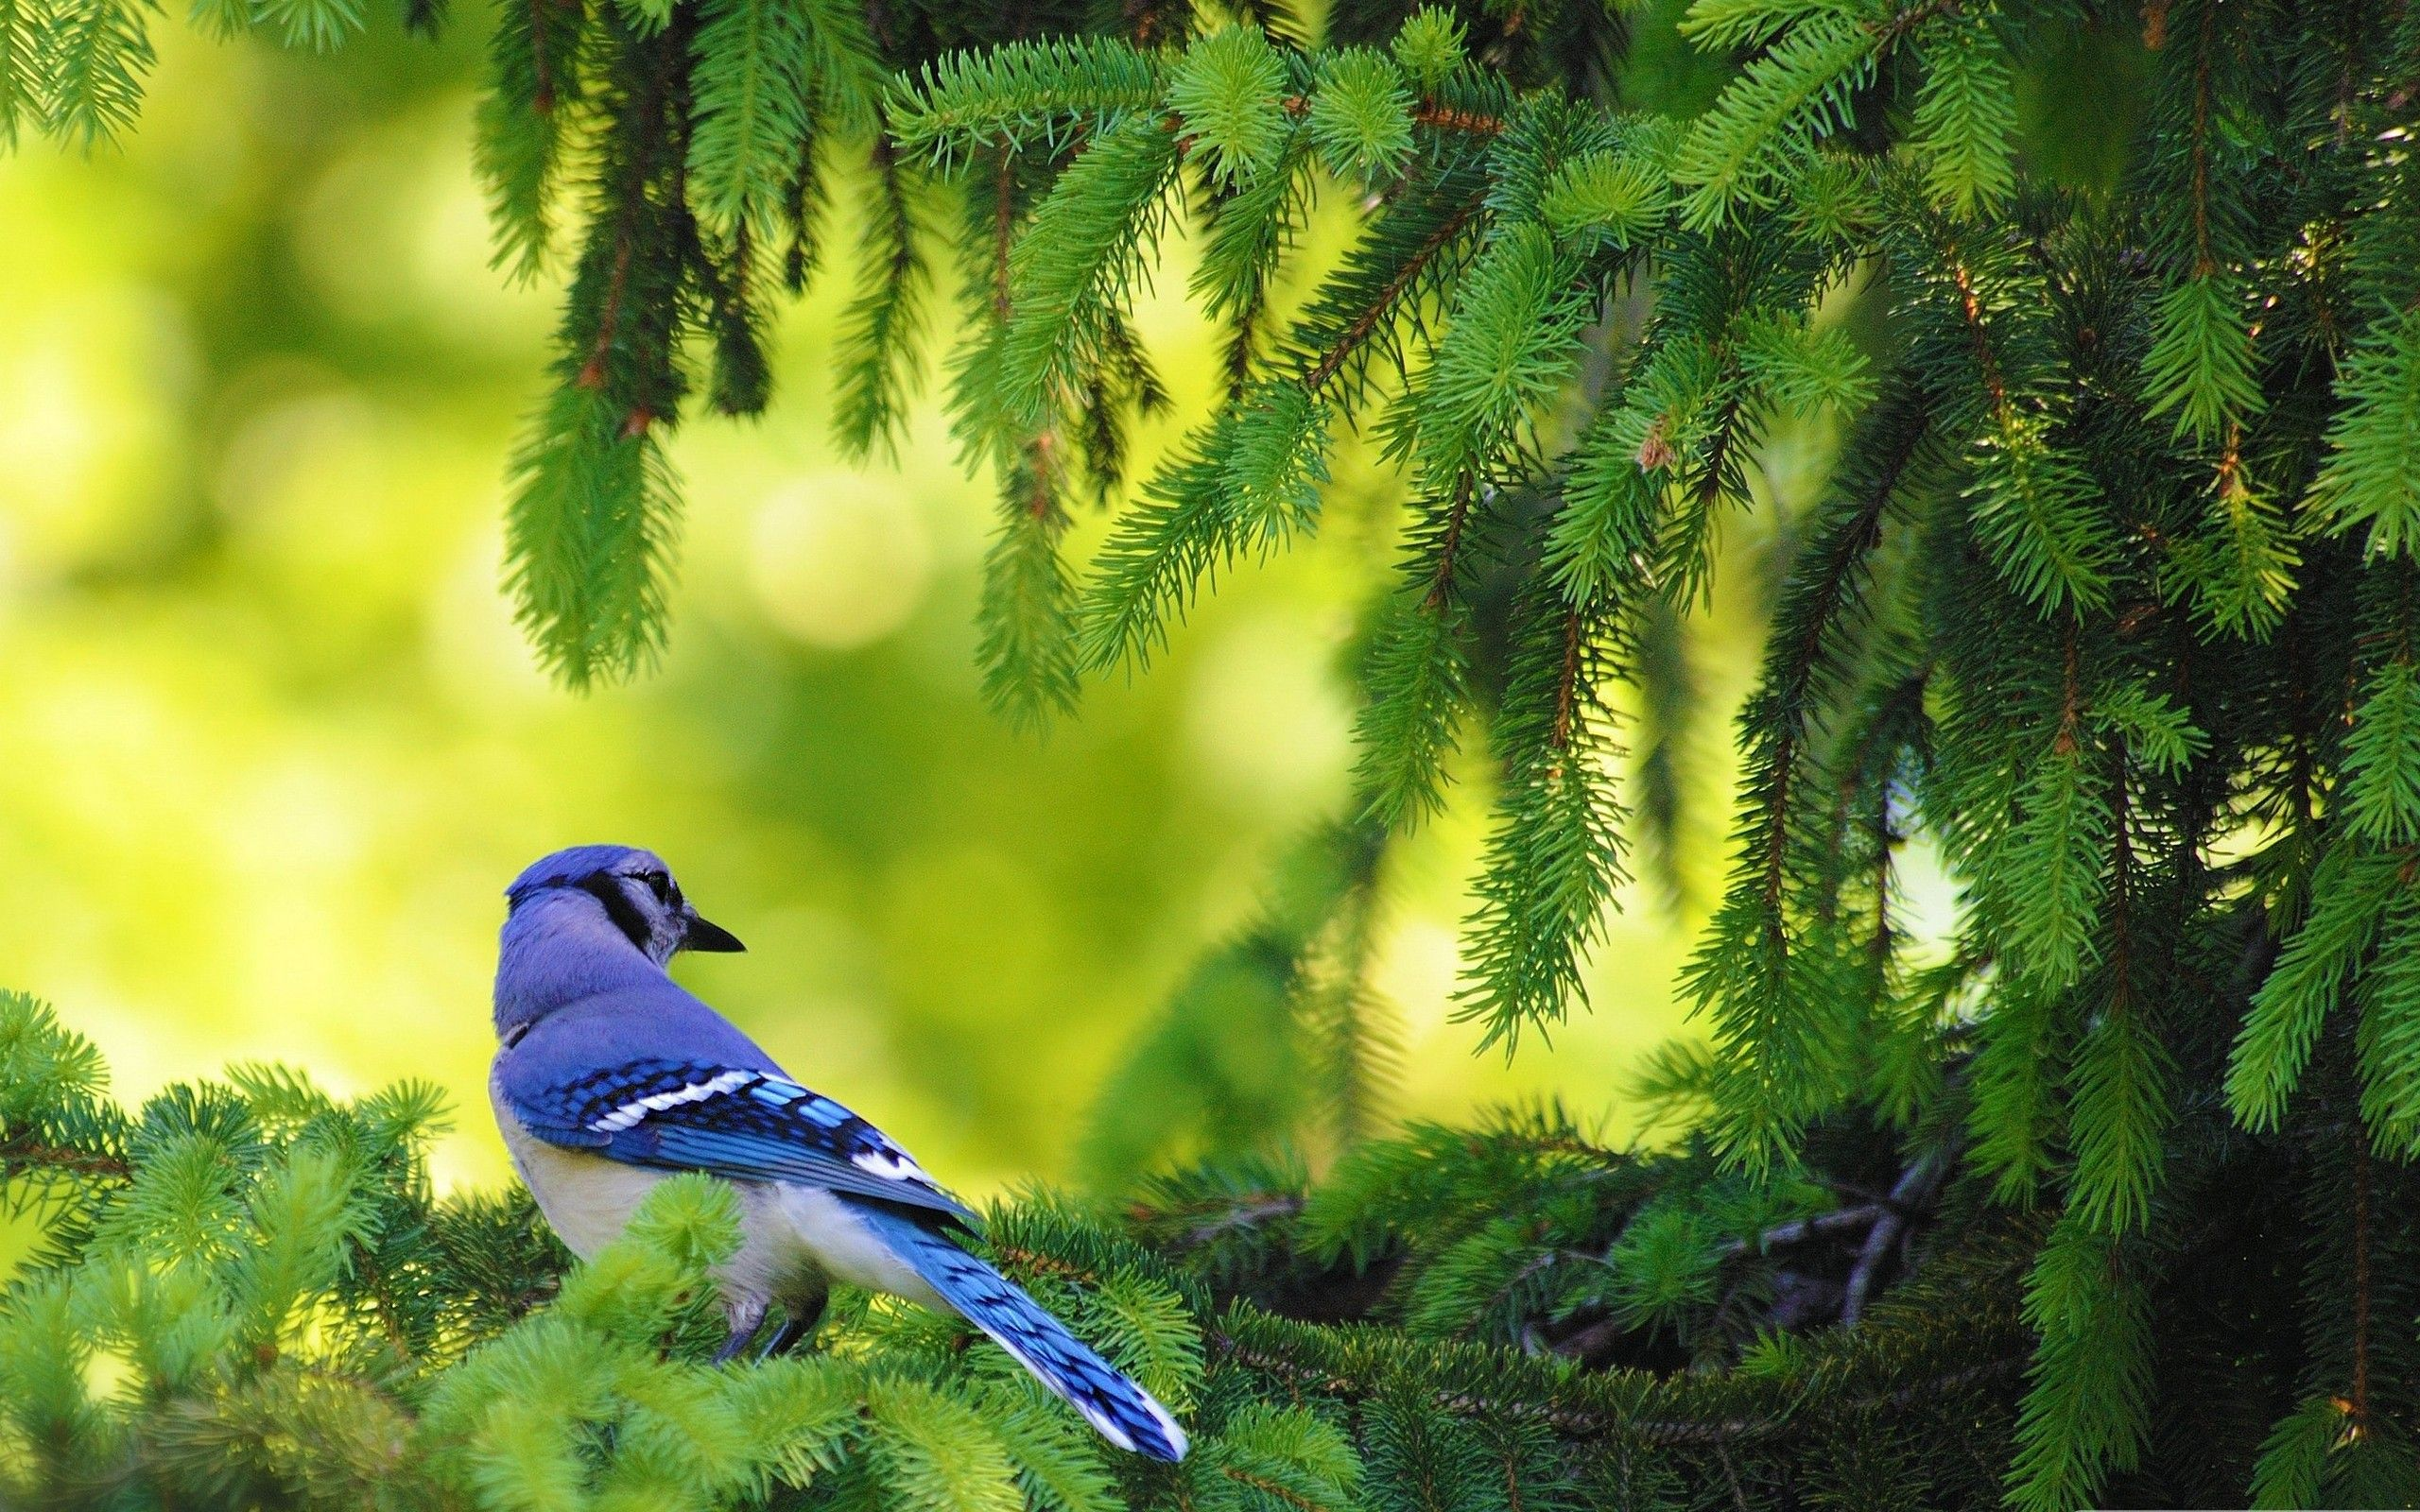 Natural Birds Hd Wallpaper Download Awesome Nice And High Quality Hd Wallpapers From Backgroundwallpapershd For F Blue Jay Blue Jay Bird Birds Wallpaper Hd